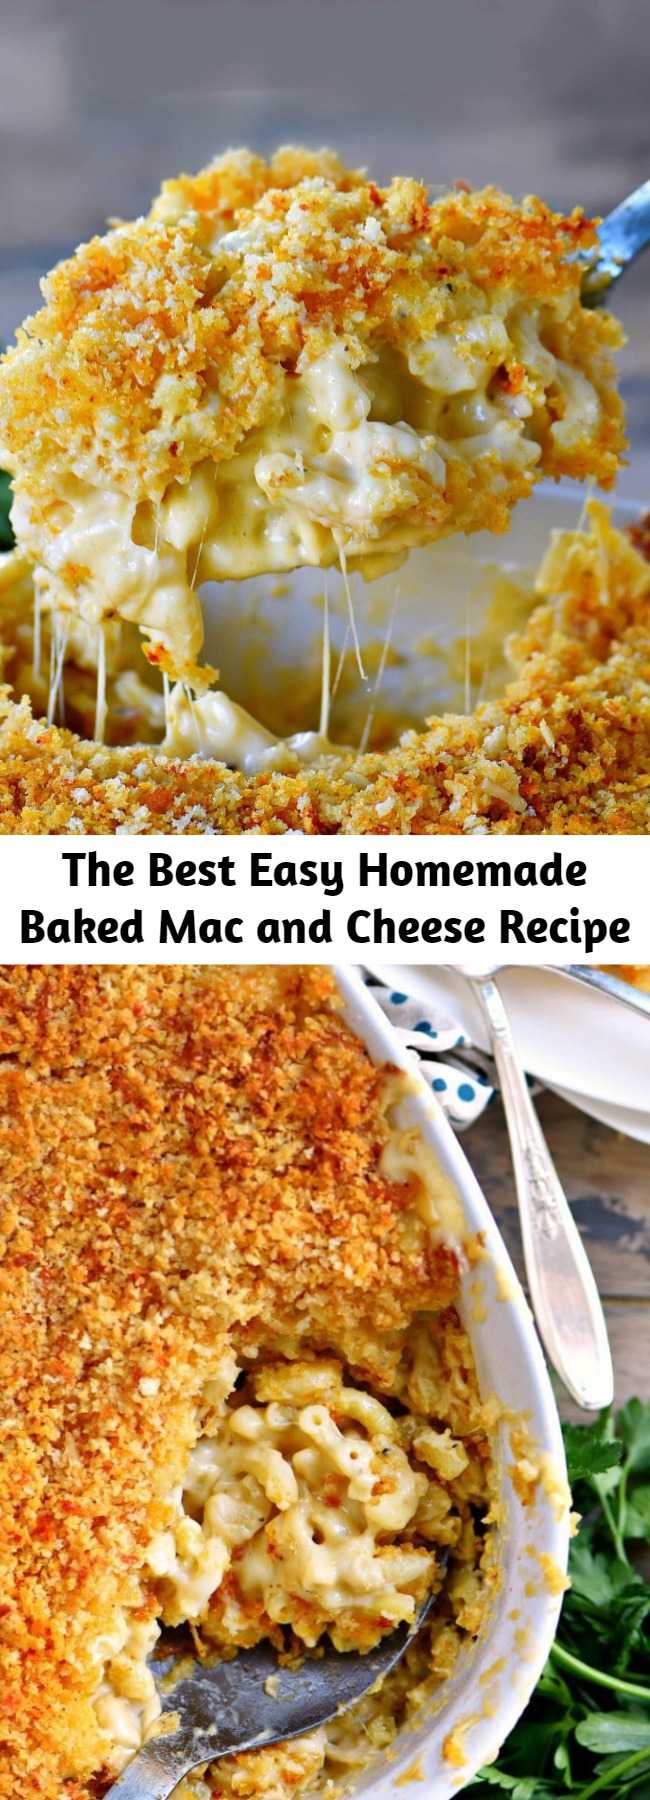 The Best Easy Homemade Baked Mac and Cheese Recipe - The BEST Homemade Mac and Cheese of your LIFE. Outrageously cheesy, ultra creamy, and topped with a crunchy Panko-Parmesan topping, this mac and cheese recipe is most definitely a keeper. I used three different cheese and a homemade cheese sauce to take this macaroni and cheese recipe over the top. #recipe #recipes #dinner #cheesy #macandcheese #macaroni #entree #kidfriendly